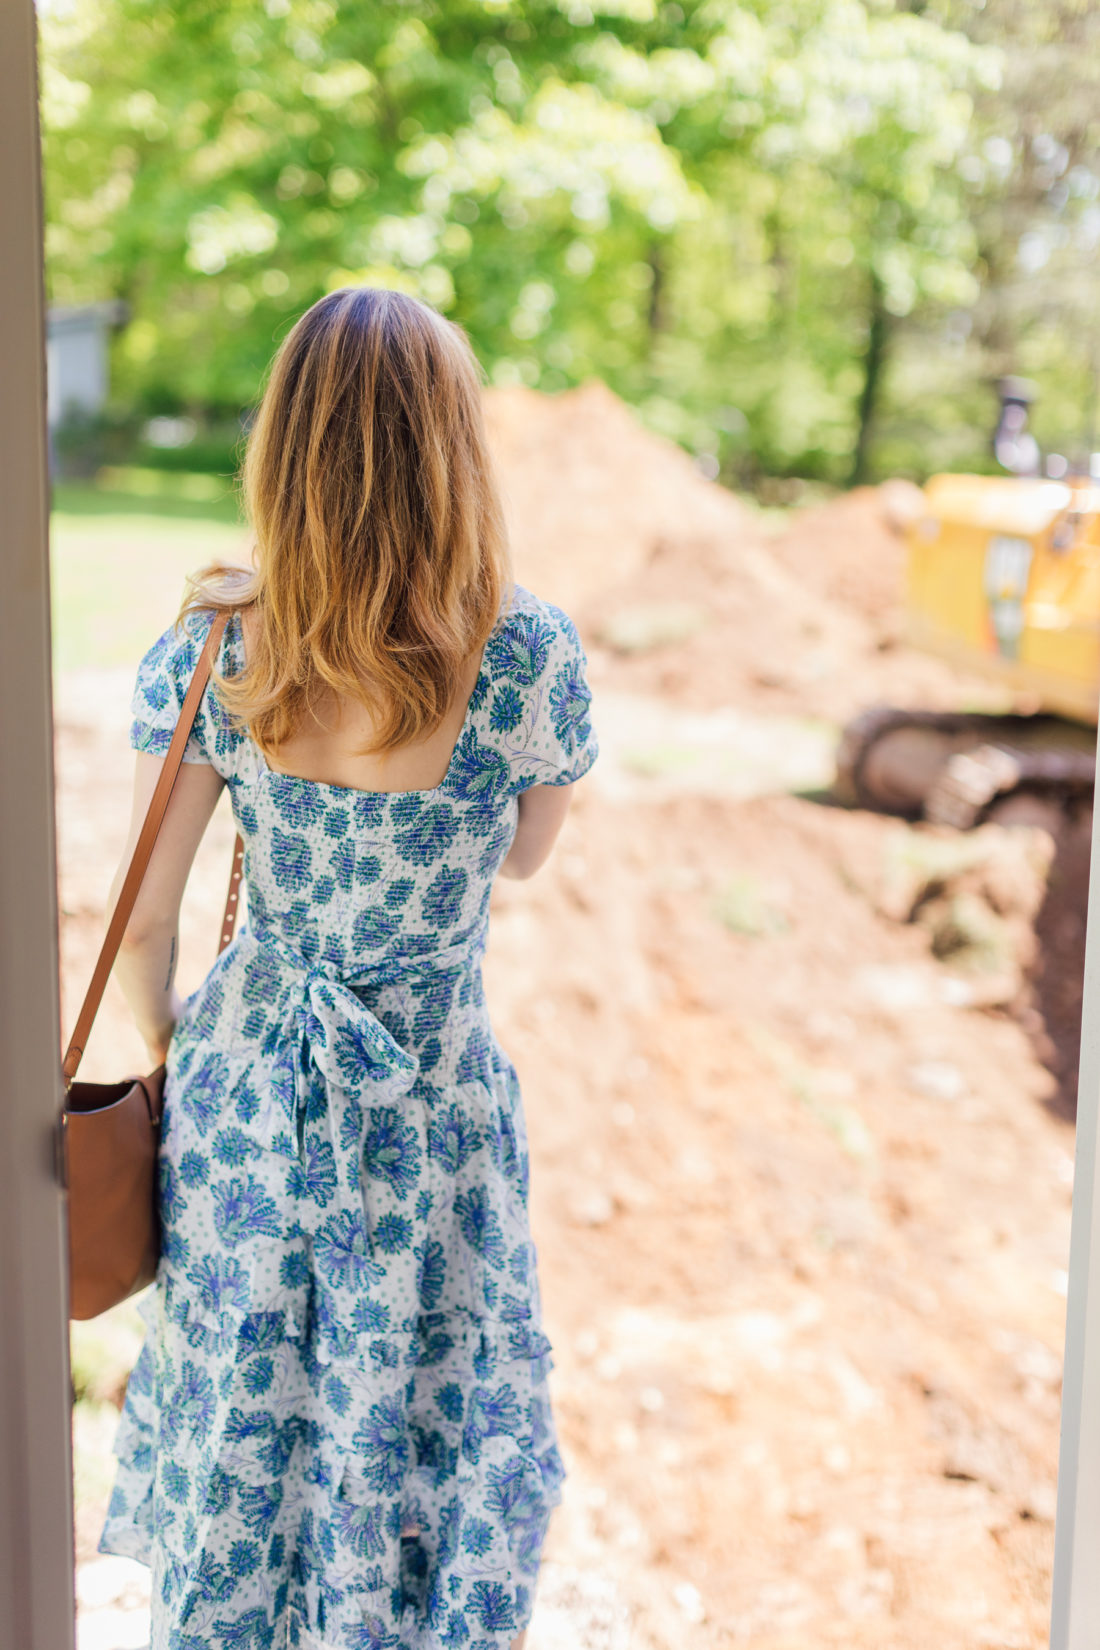 Eva Amurri Martino looks out at her home renovation and thinks about summer plans